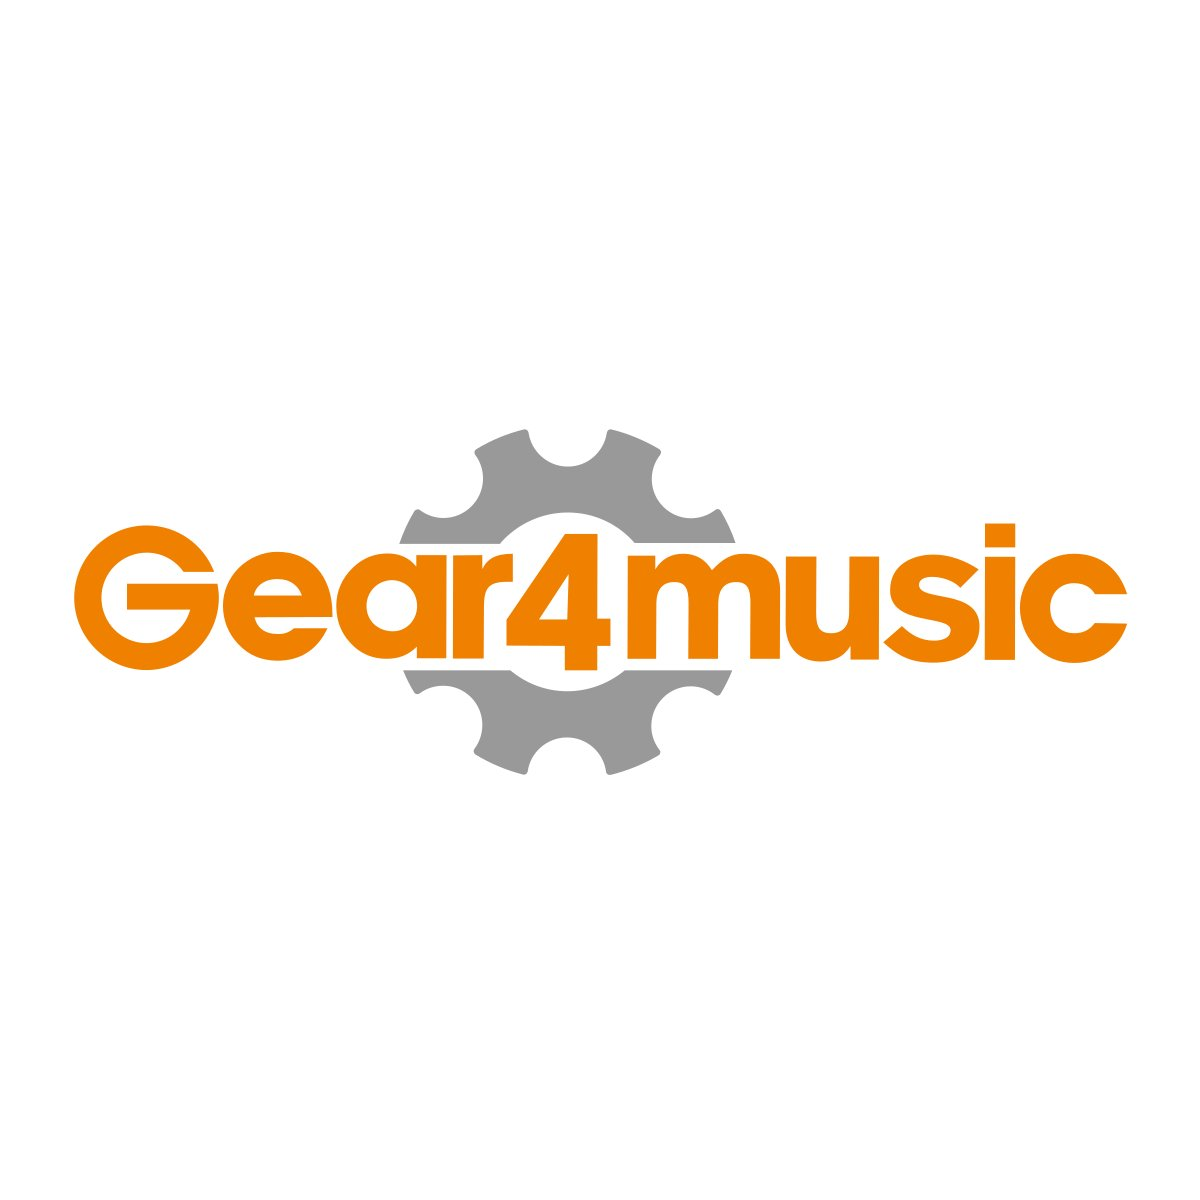 roland fa 07 music workstation gear4music. Black Bedroom Furniture Sets. Home Design Ideas